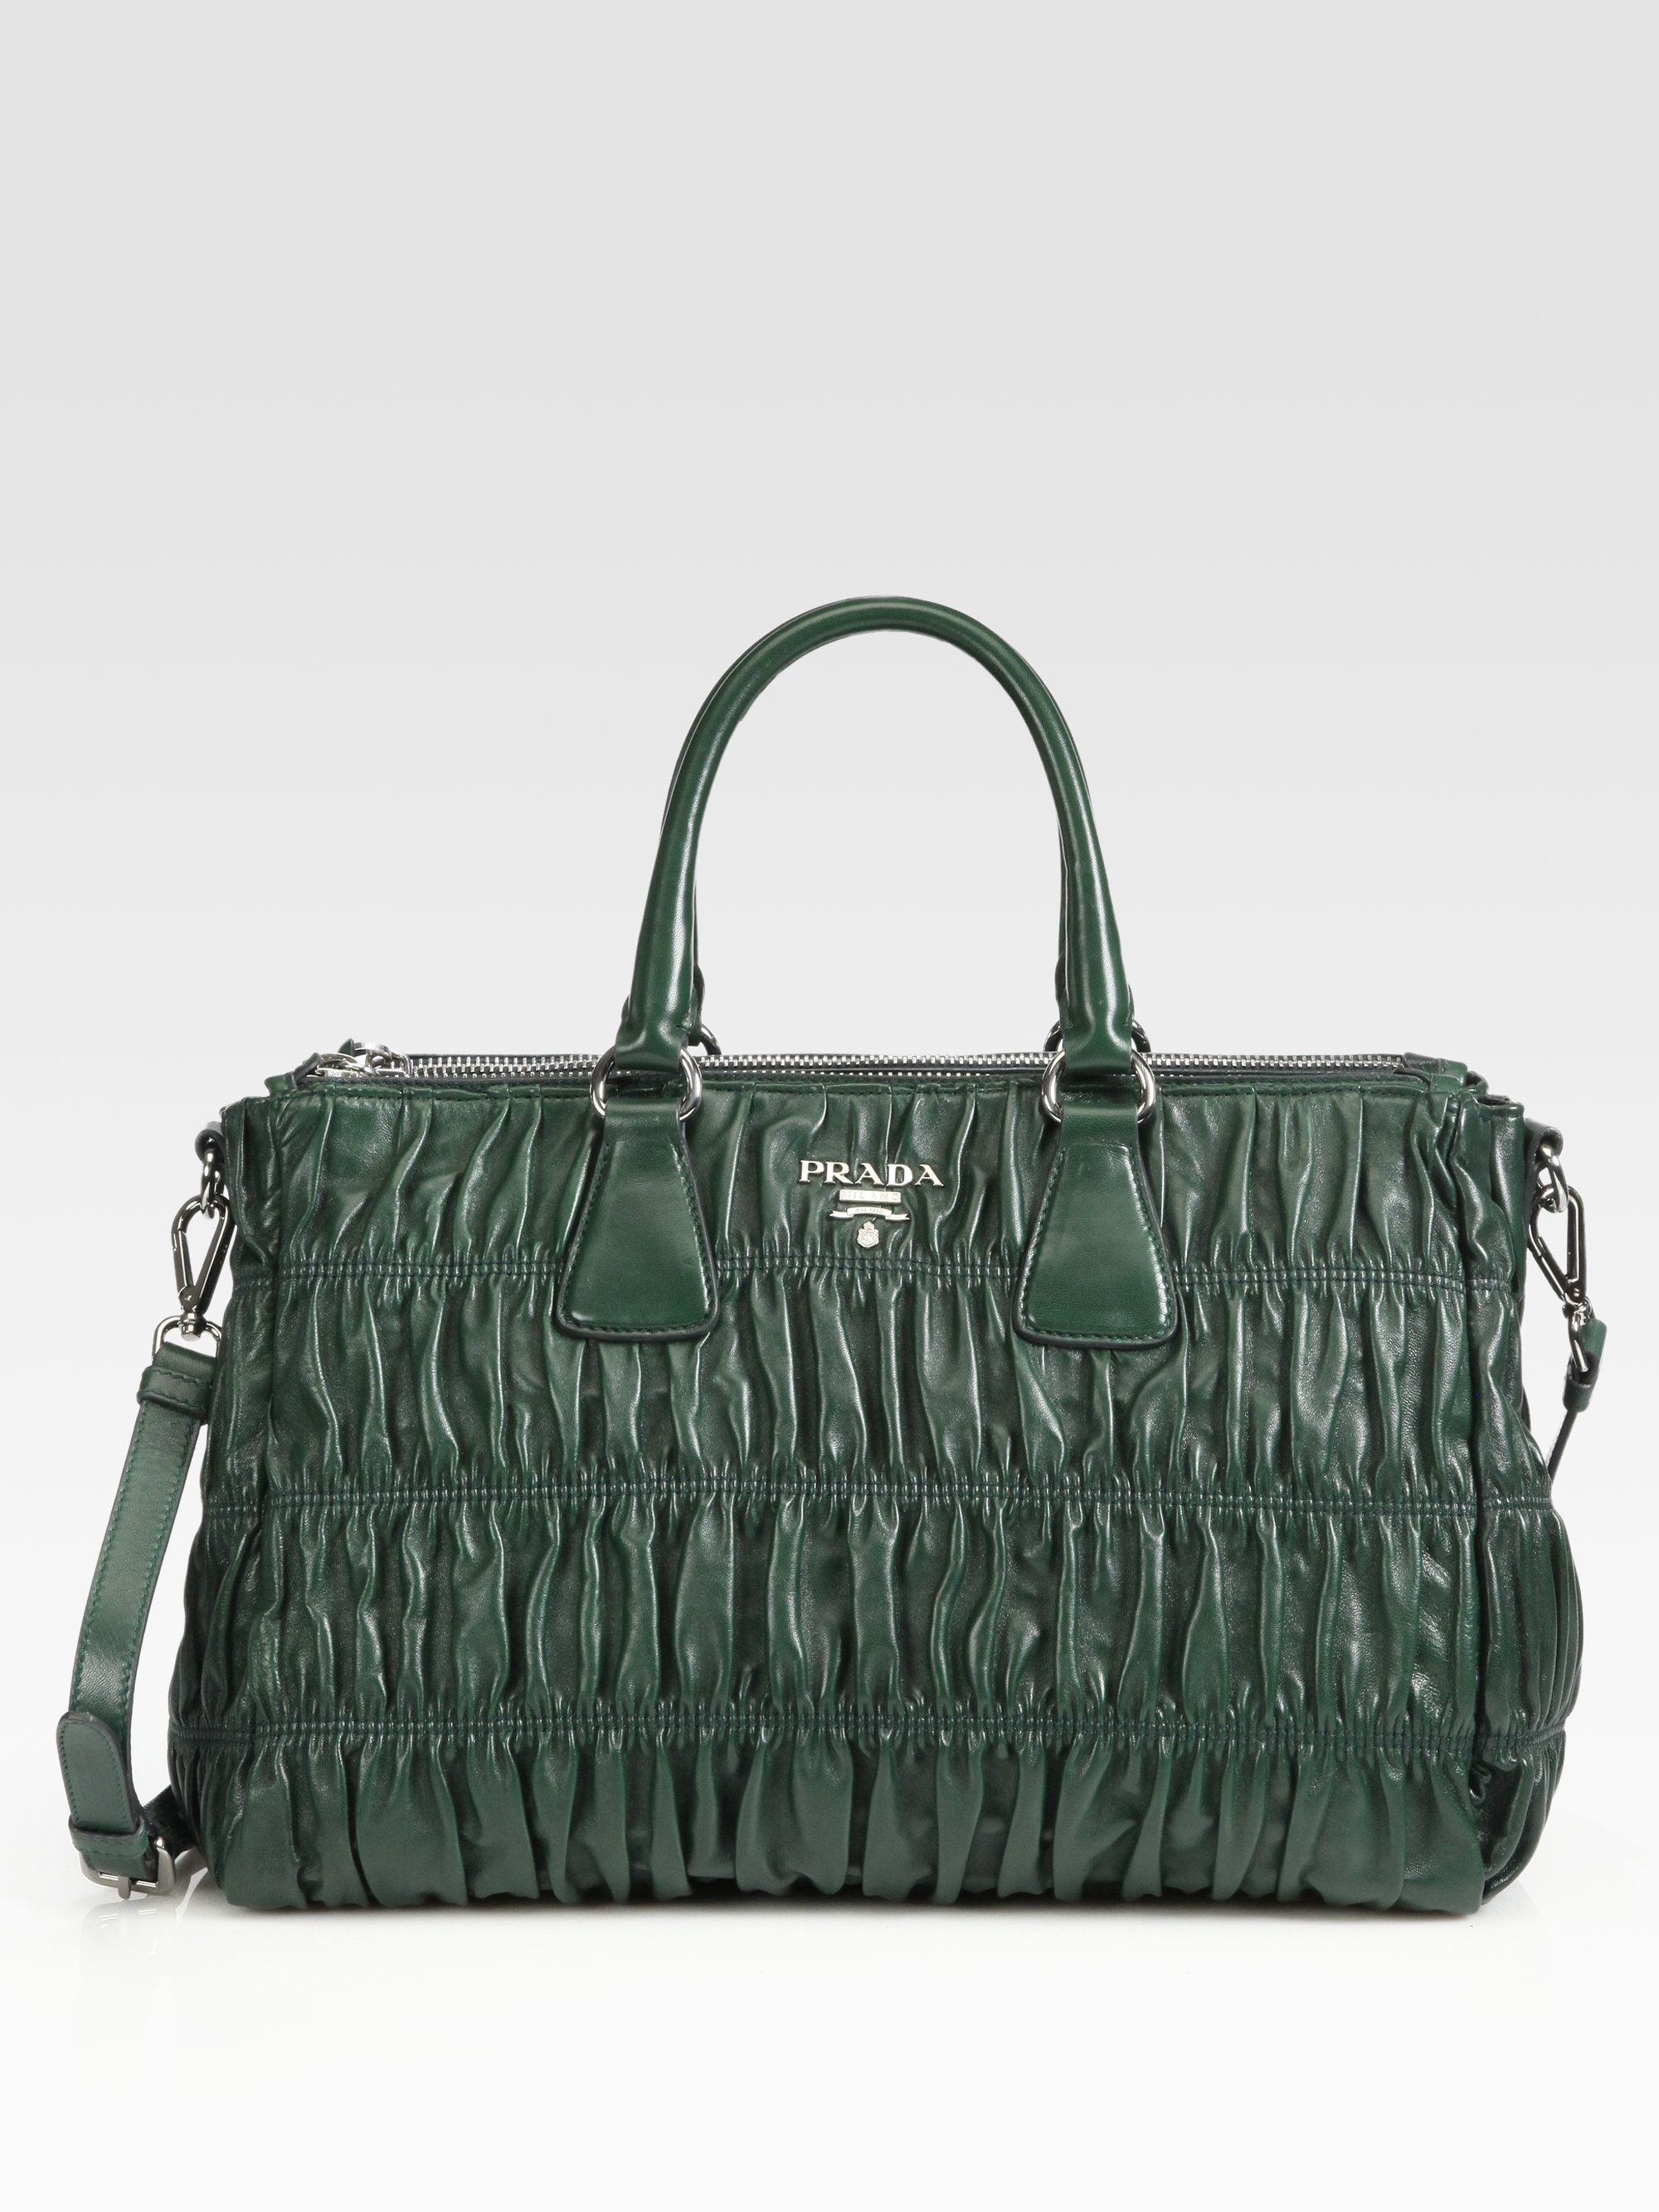 8fcabfa7ebc3 Prada Nappa Gaufre Shopping Bag in Green - Lyst